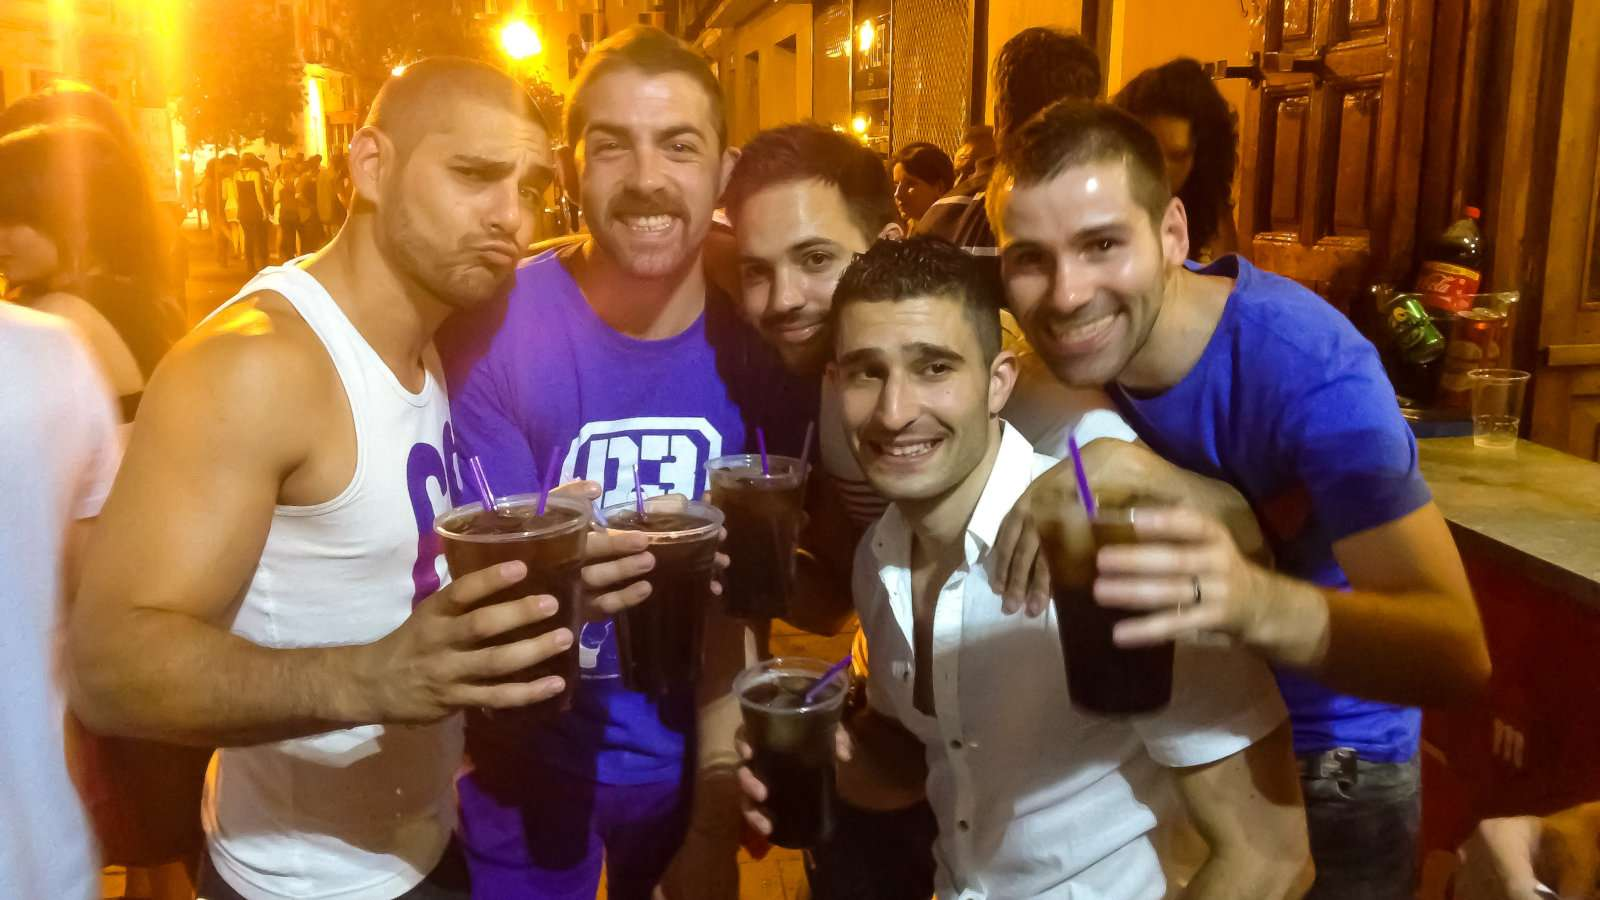 Madrid's Pride event is the biggest in Spain and one of the biggest in the world so you're going to have a wonderful time!